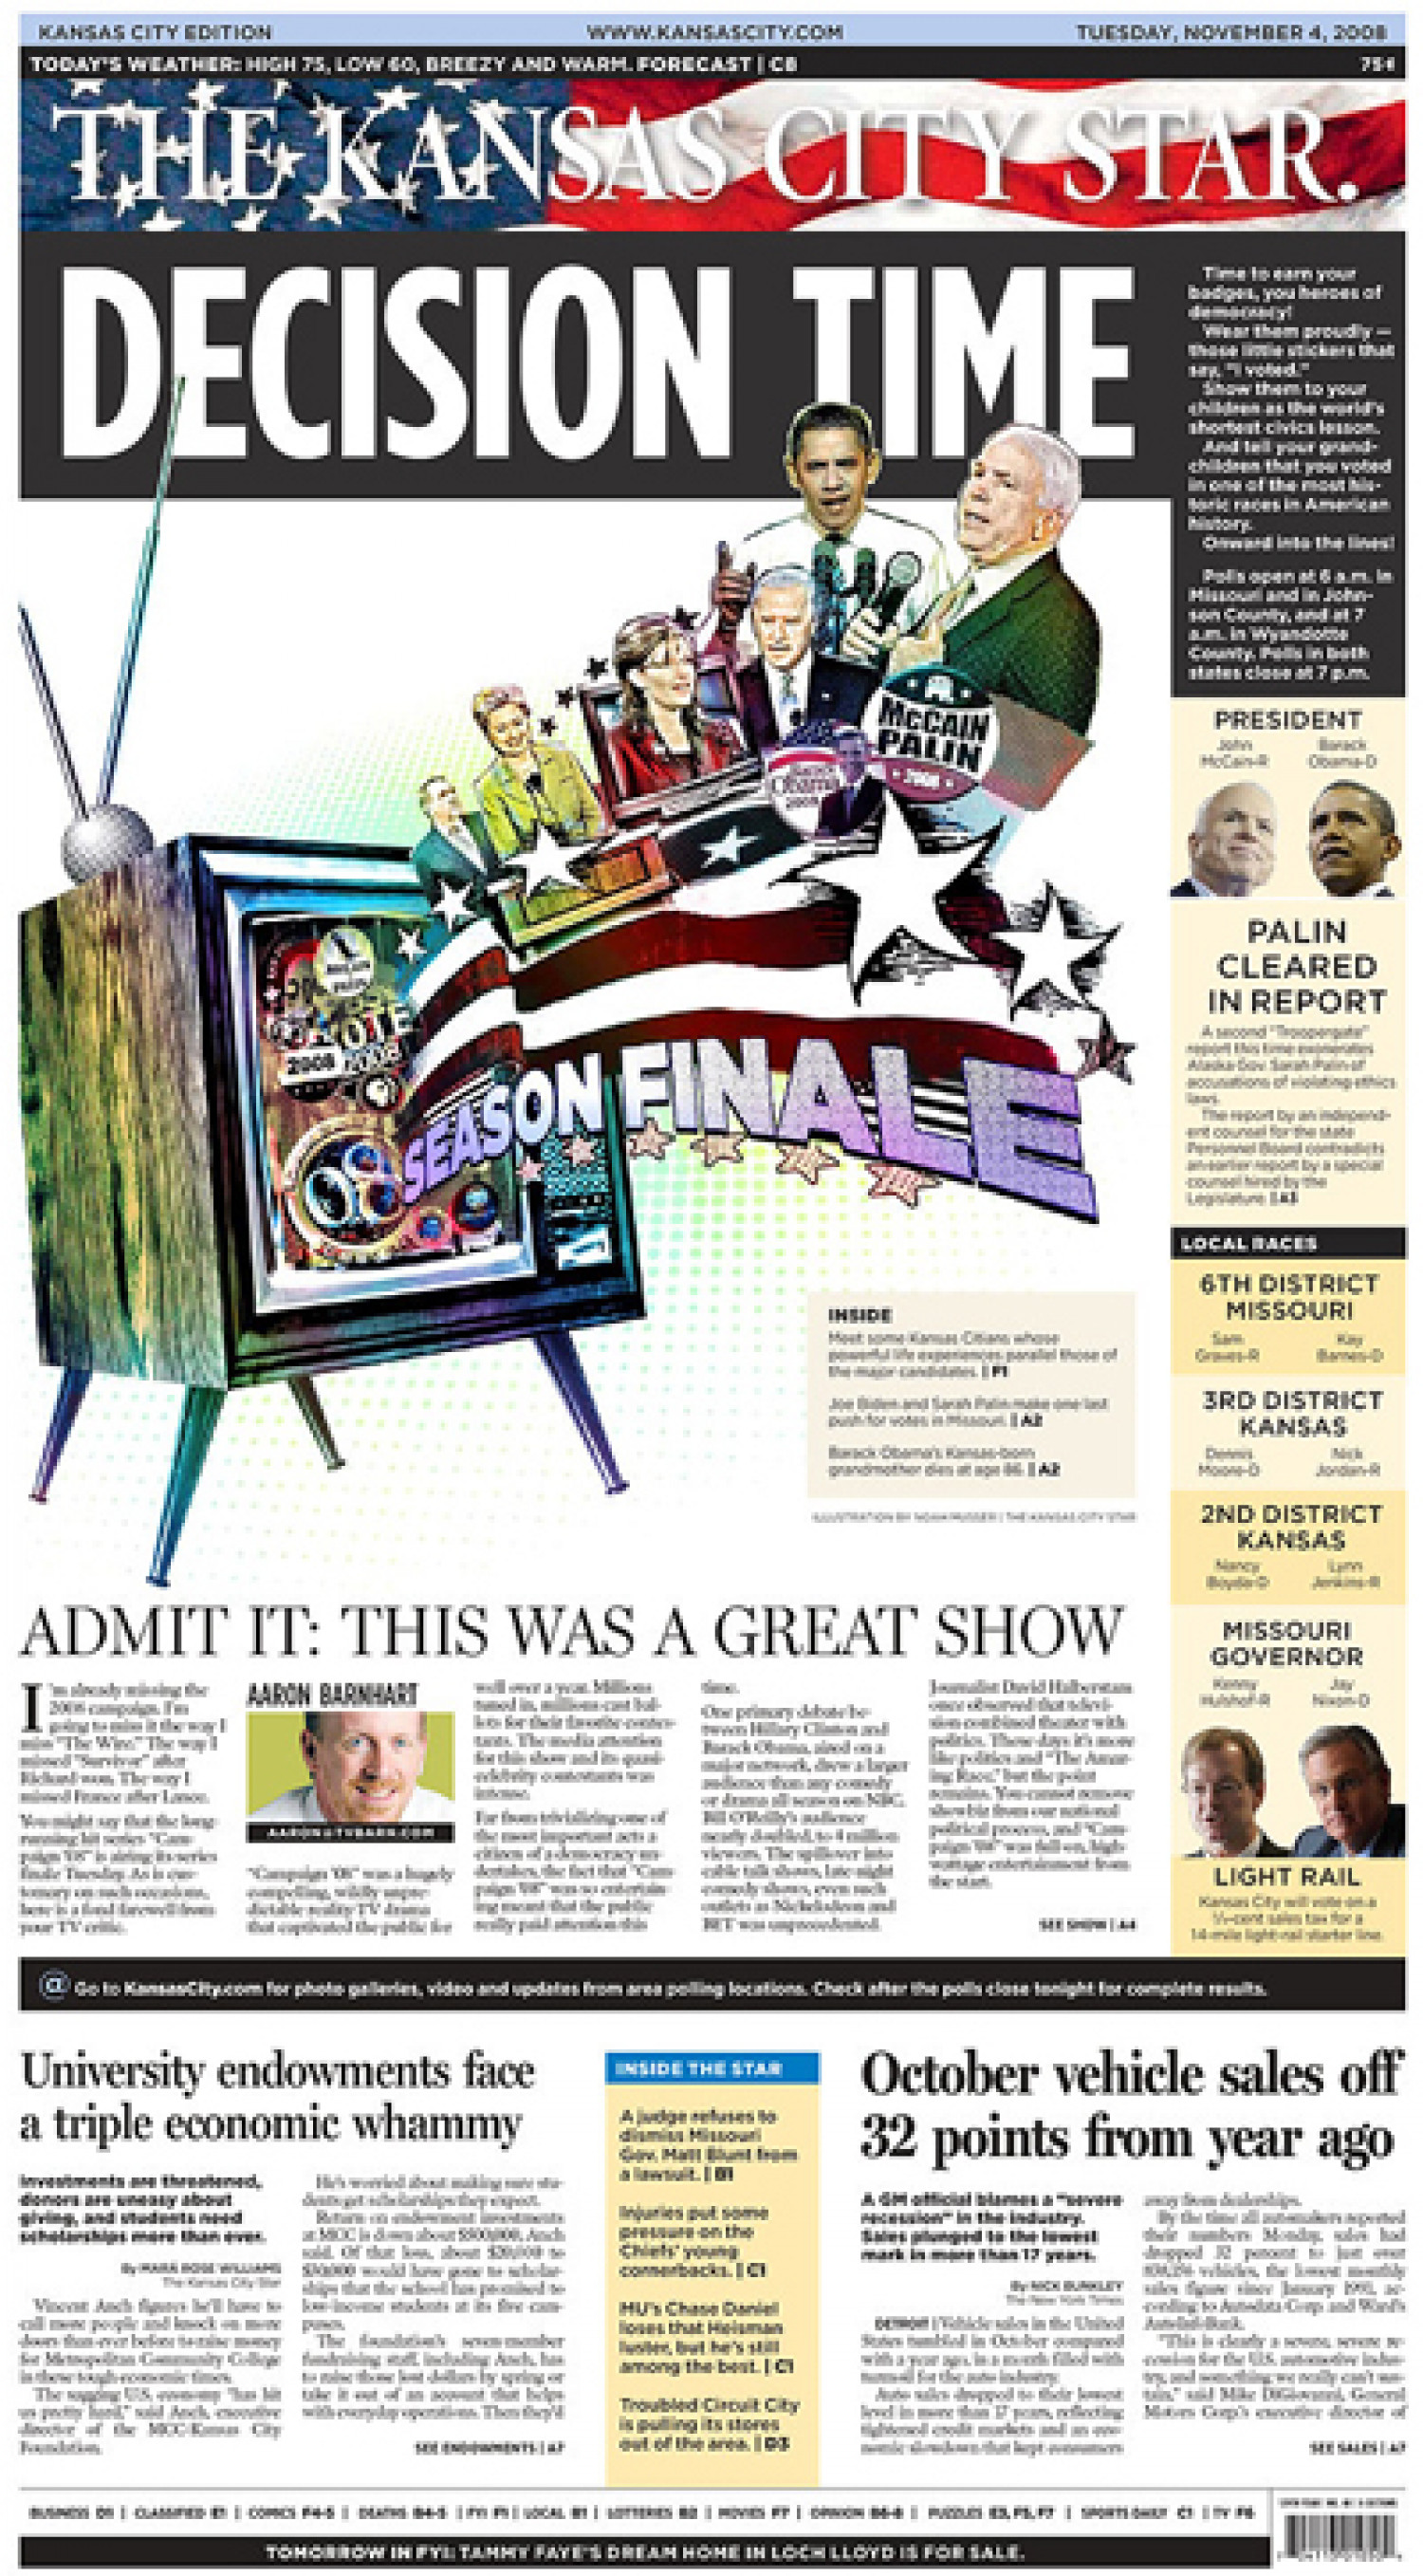 The Kansas City Star: Decision Time Infographic